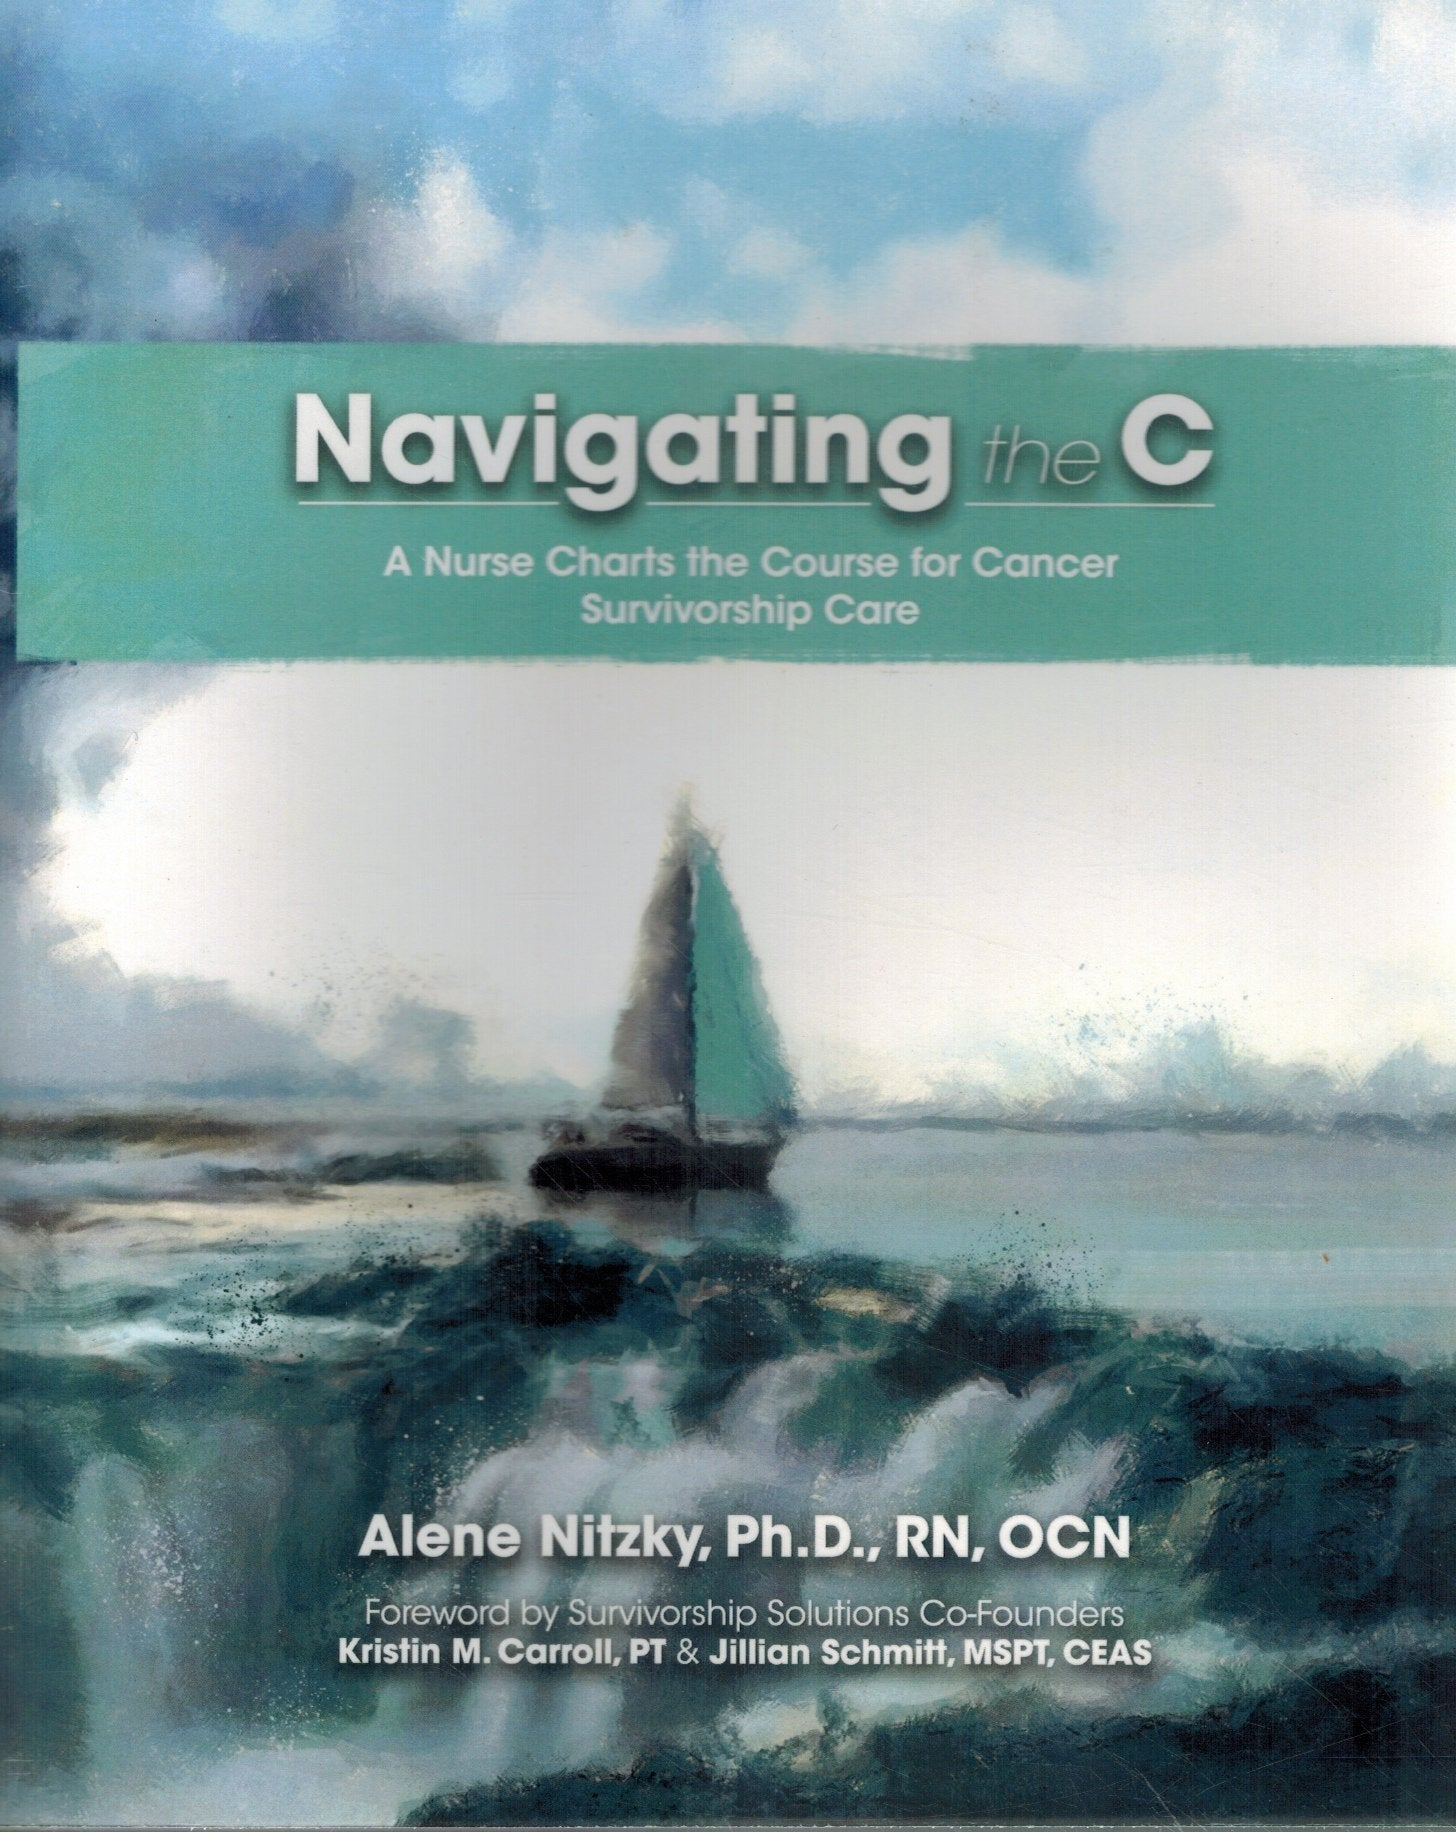 NAVIGATING THE C A Nurse Charts the Course for Cancer Survivorship Care  by Nitzky Ph. D. , Alene